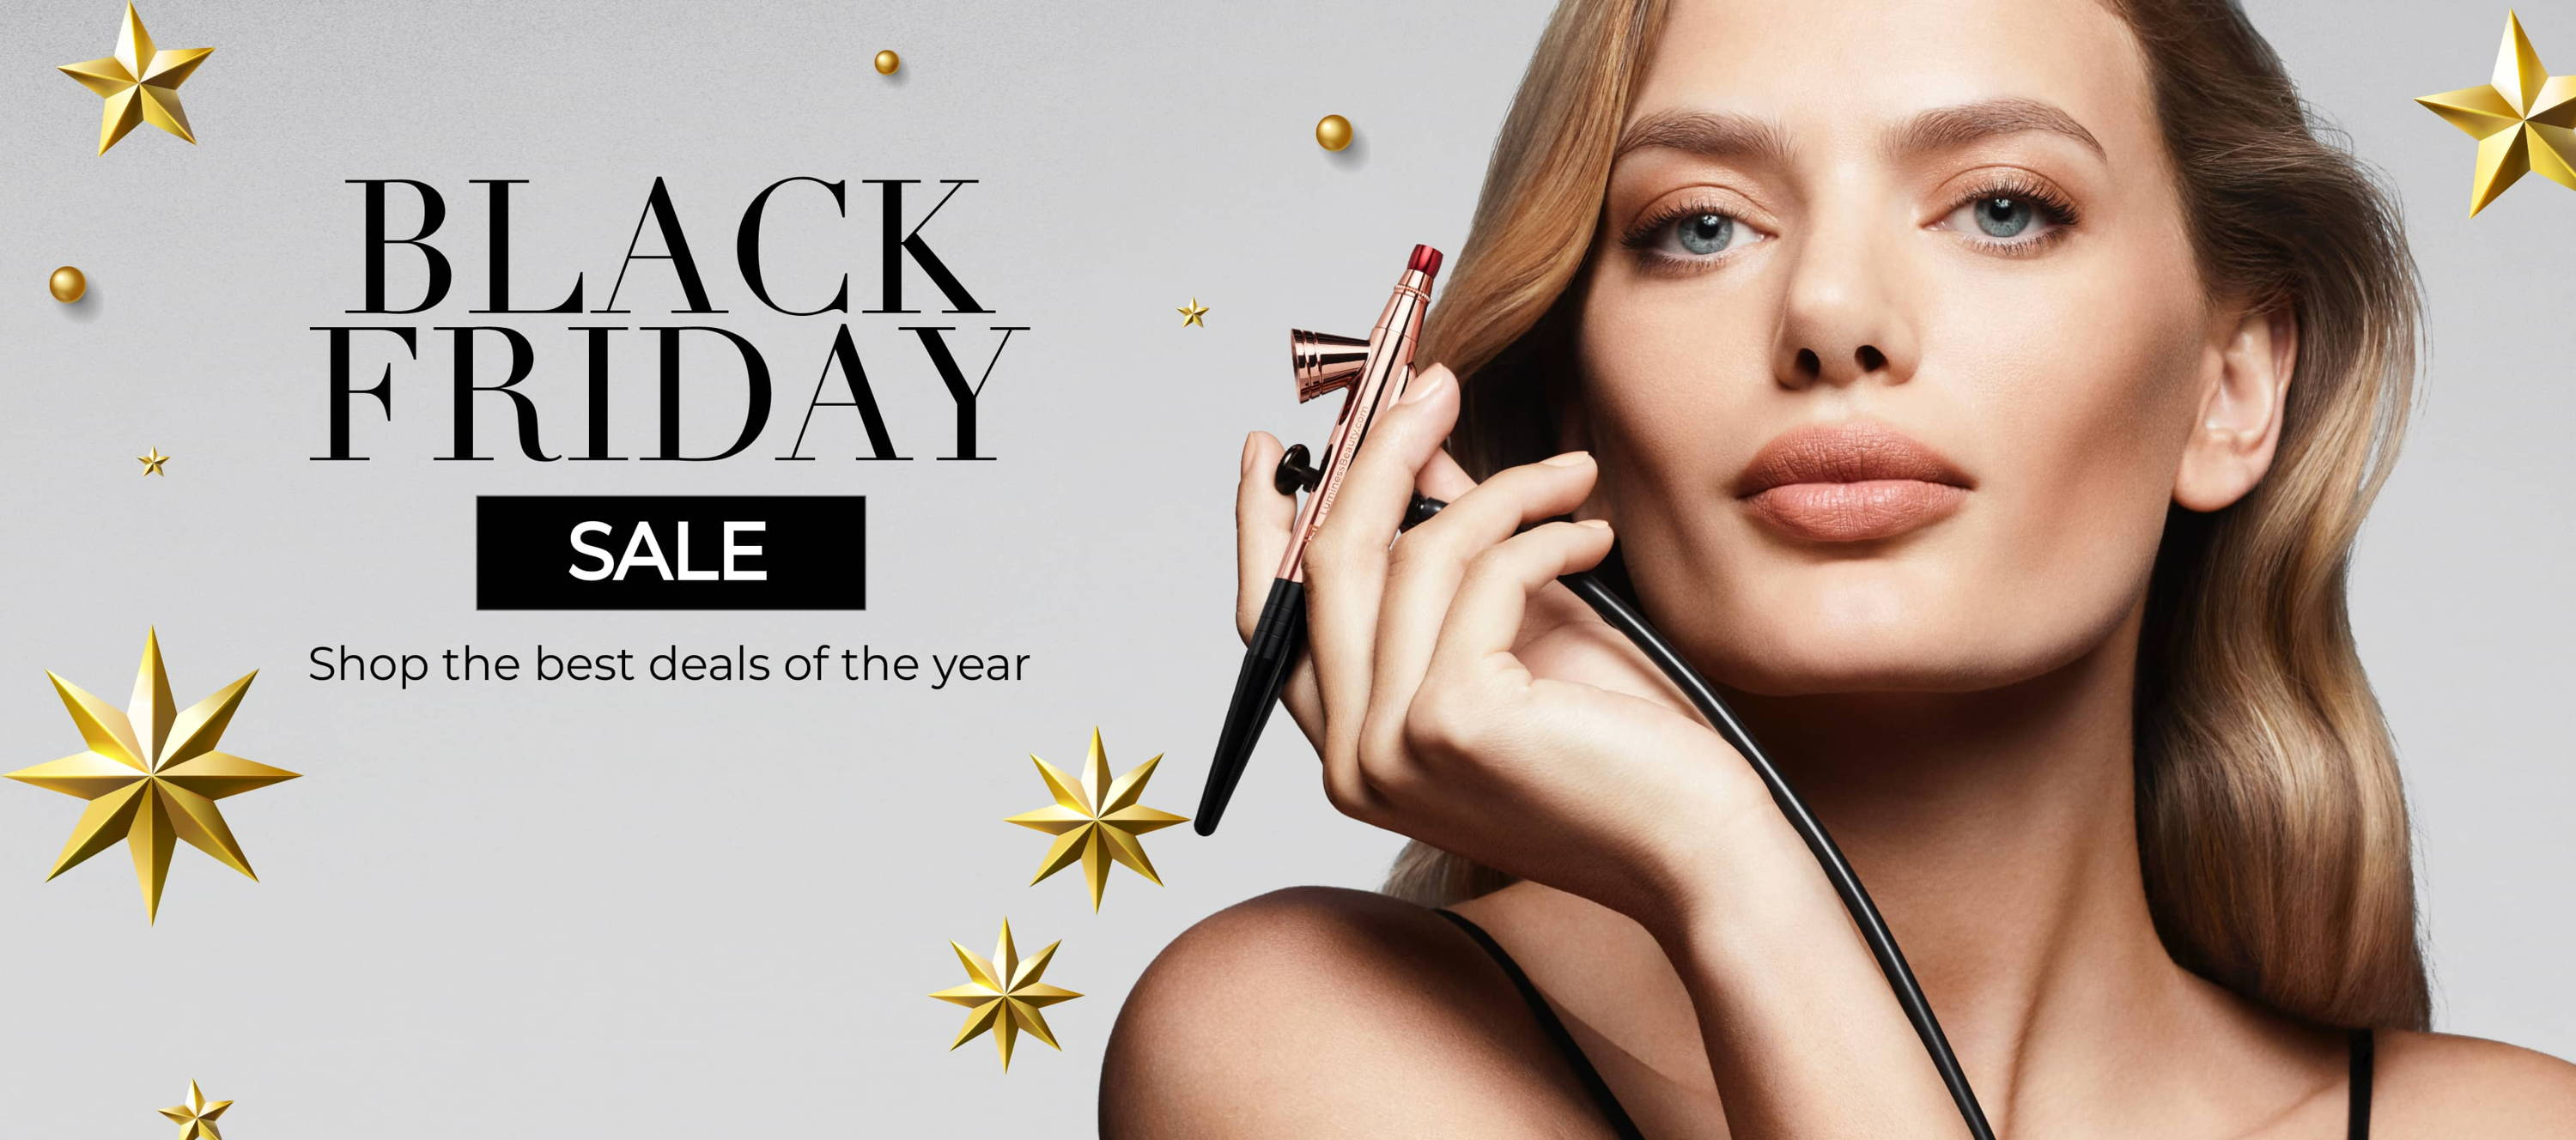 Black Friday SALE - Shop the best deals of the year